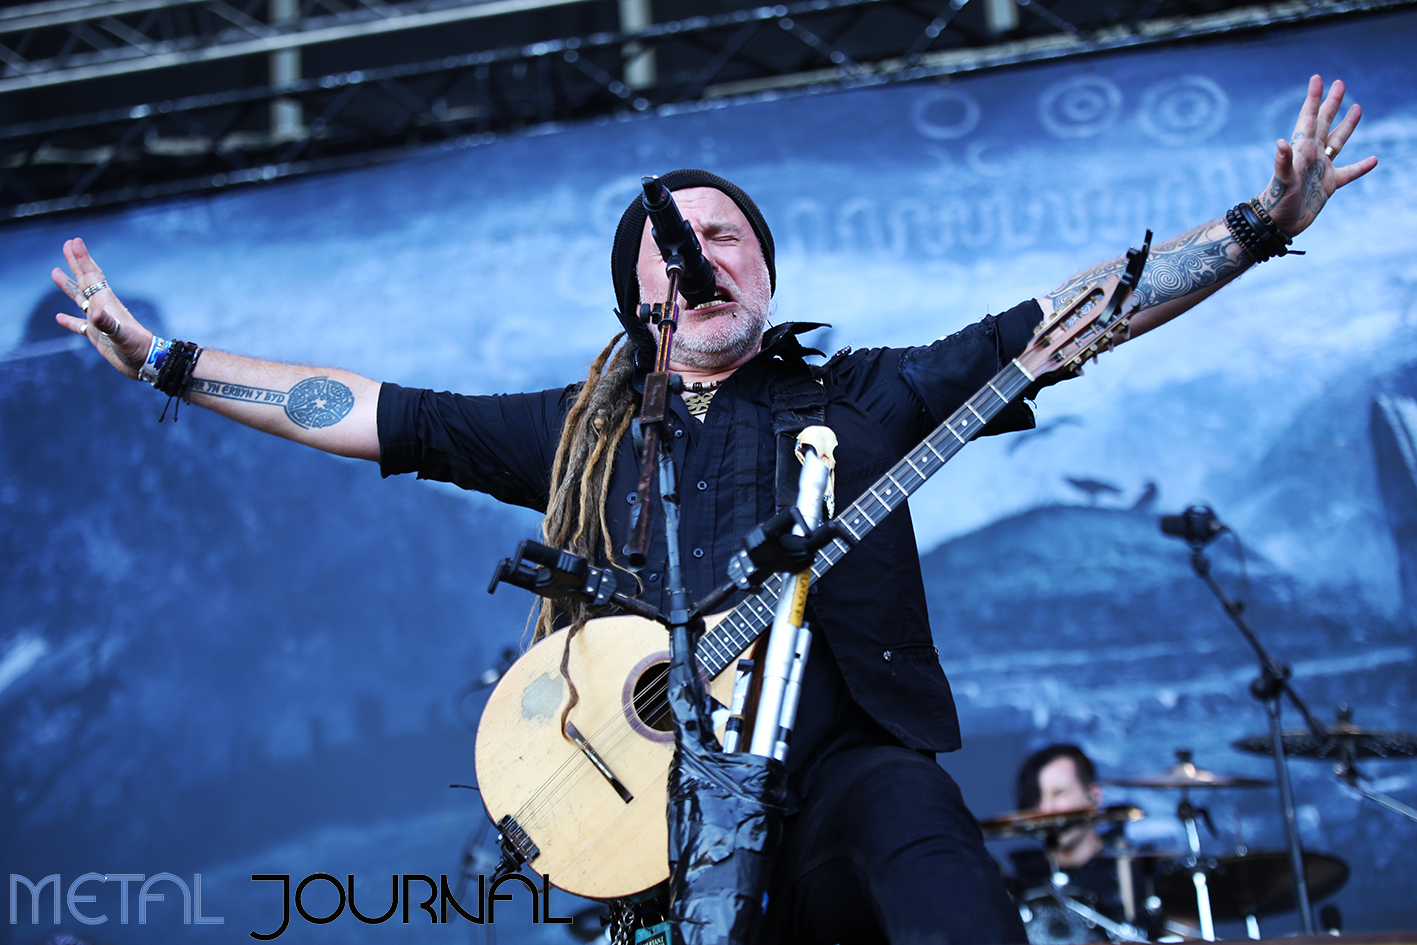 eluveitie - leyendas del rock 2019 metal journal pic 2